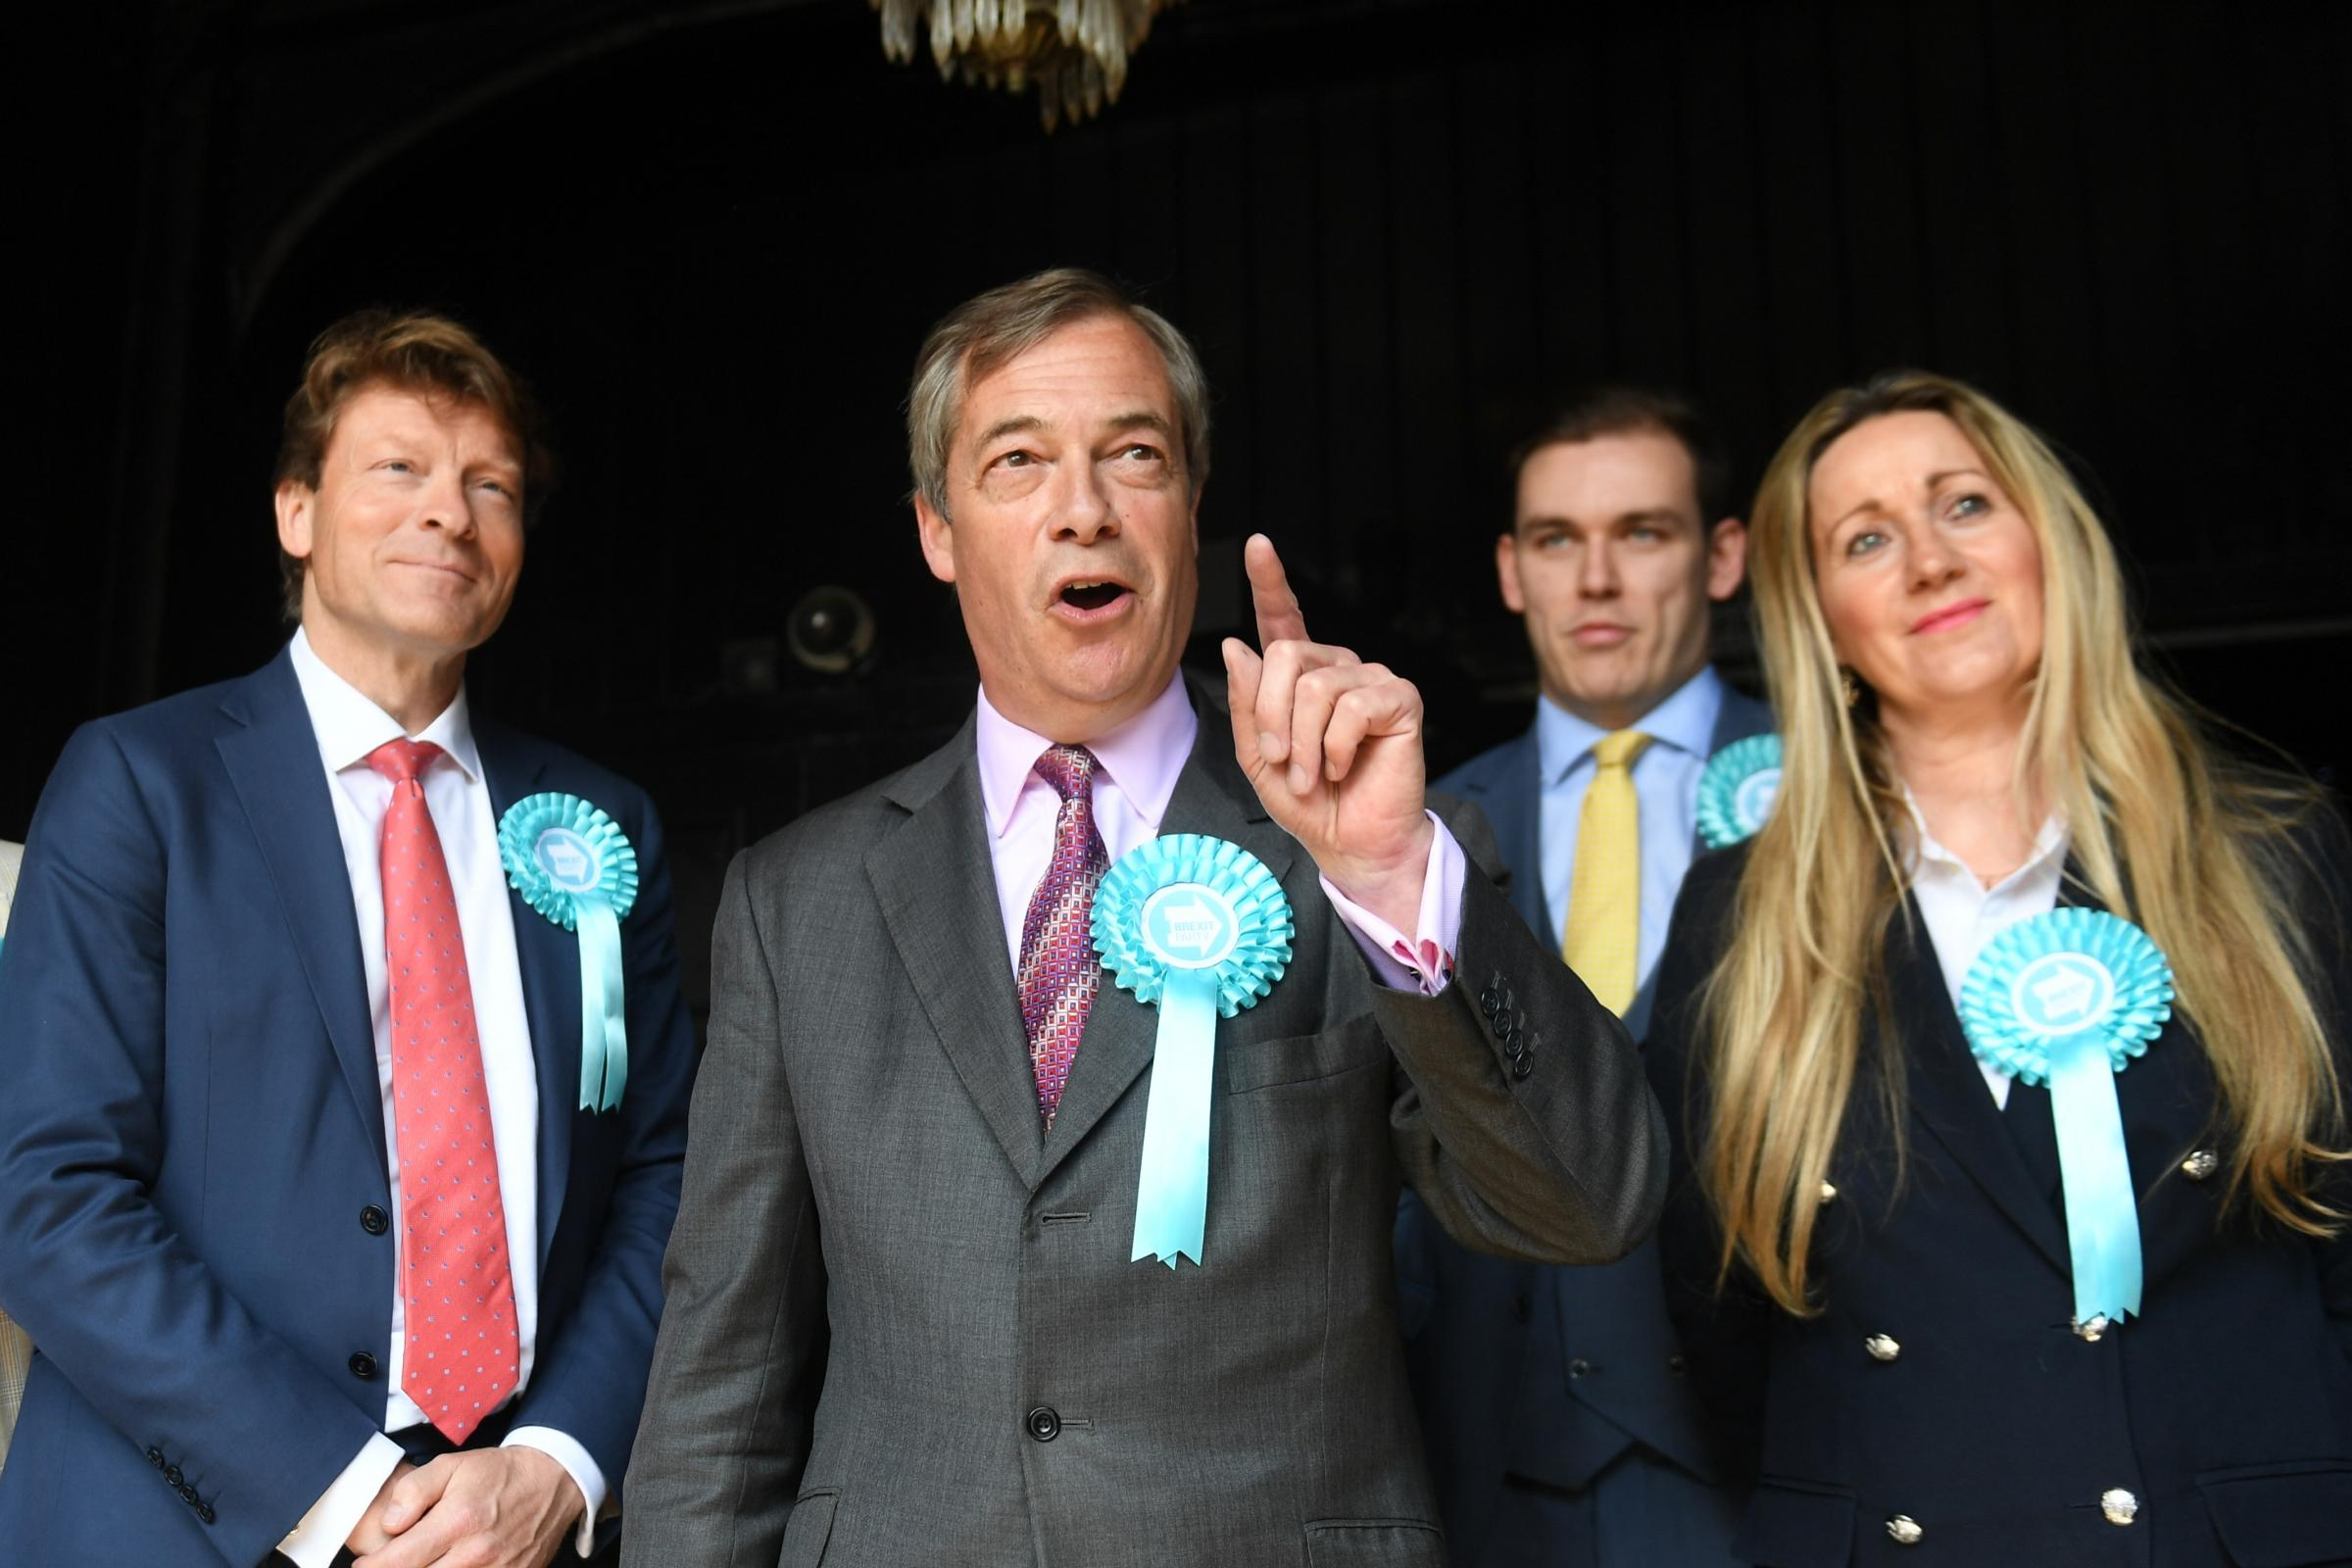 Brexit Party leader Nigel Farage (centre) with Brexit Party chairman Richard Tice (left) and candidates Michael Heaver and June Mummery at the Sugar Hut in Brentwood